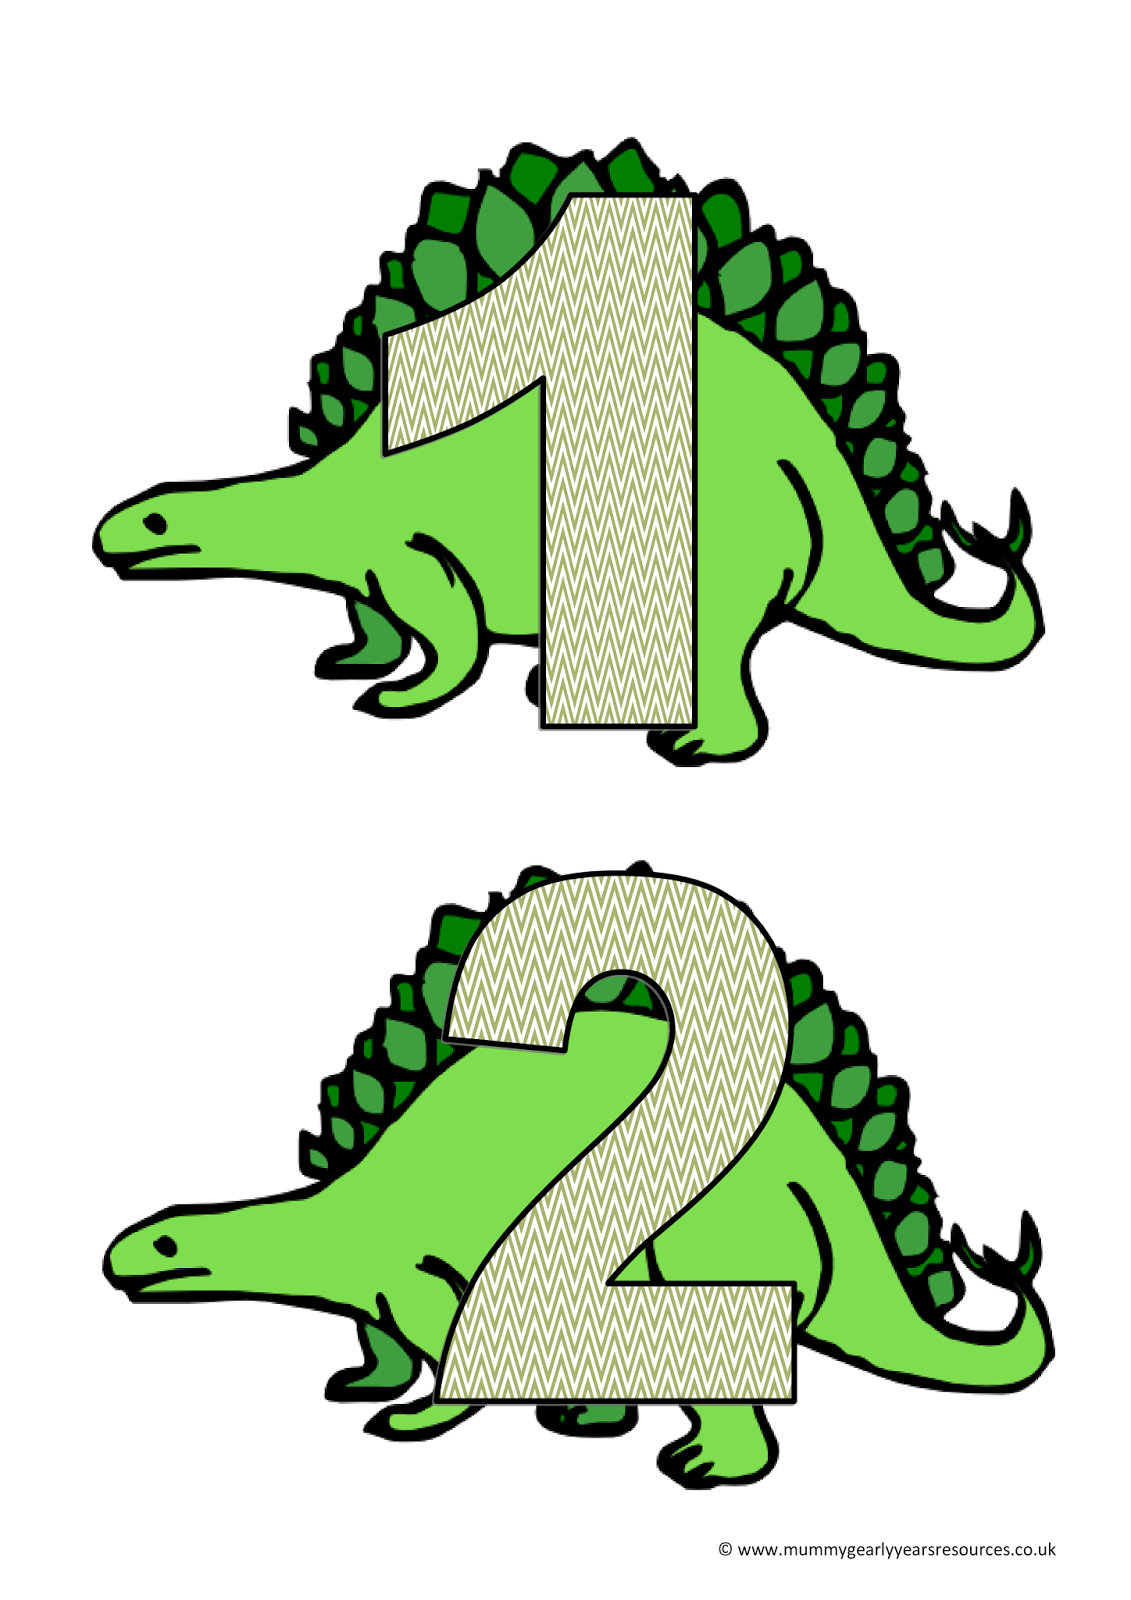 Dinosaur number line - Mummy G early years resources   Dinosaurs ...